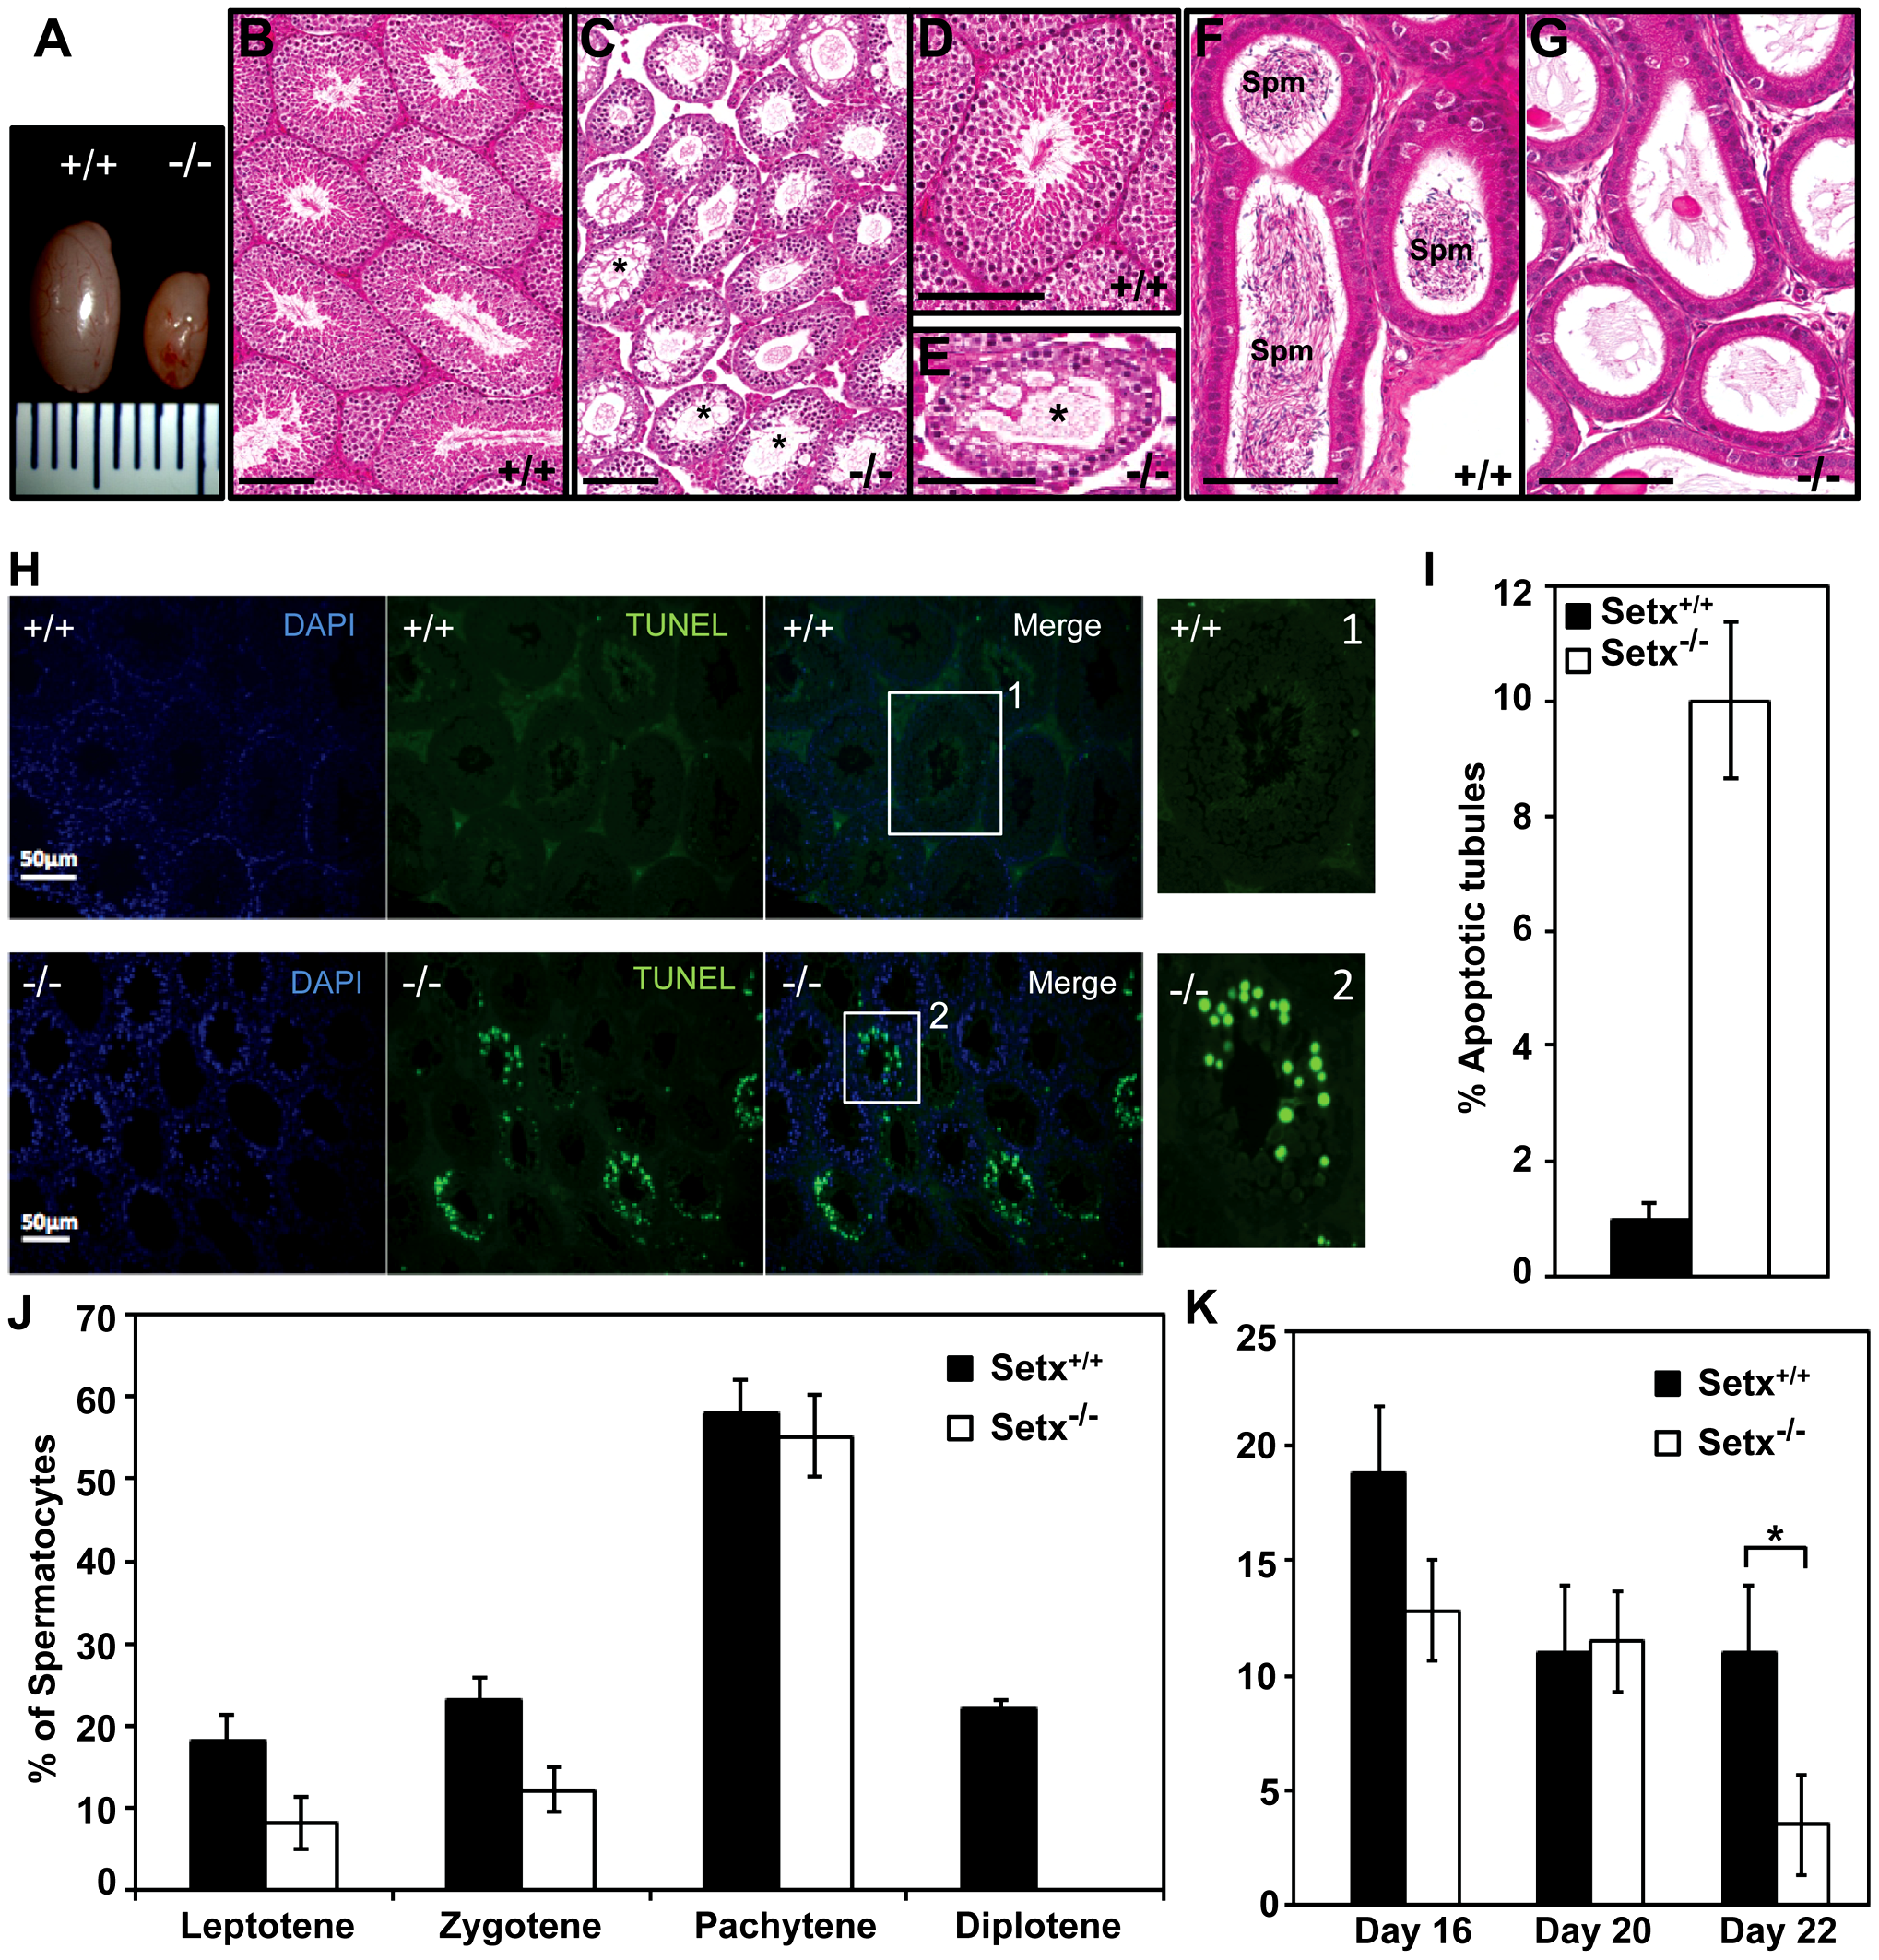 Spermatogenesis is disrupted in <i>Setx<sup>−/−</sup></i> mice.